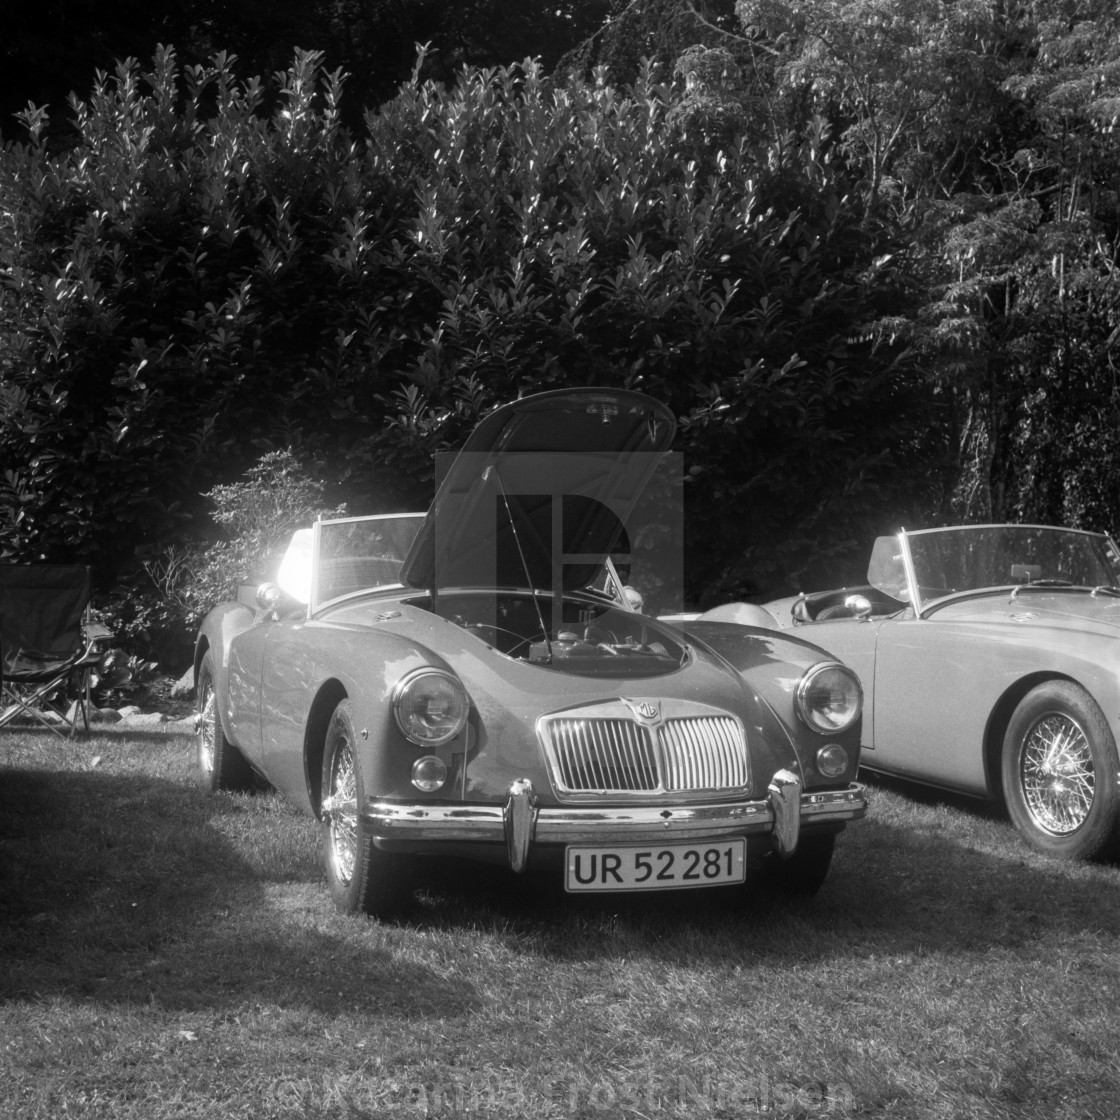 """""""MG, classic car taken by classic camera, BW film"""" stock image"""